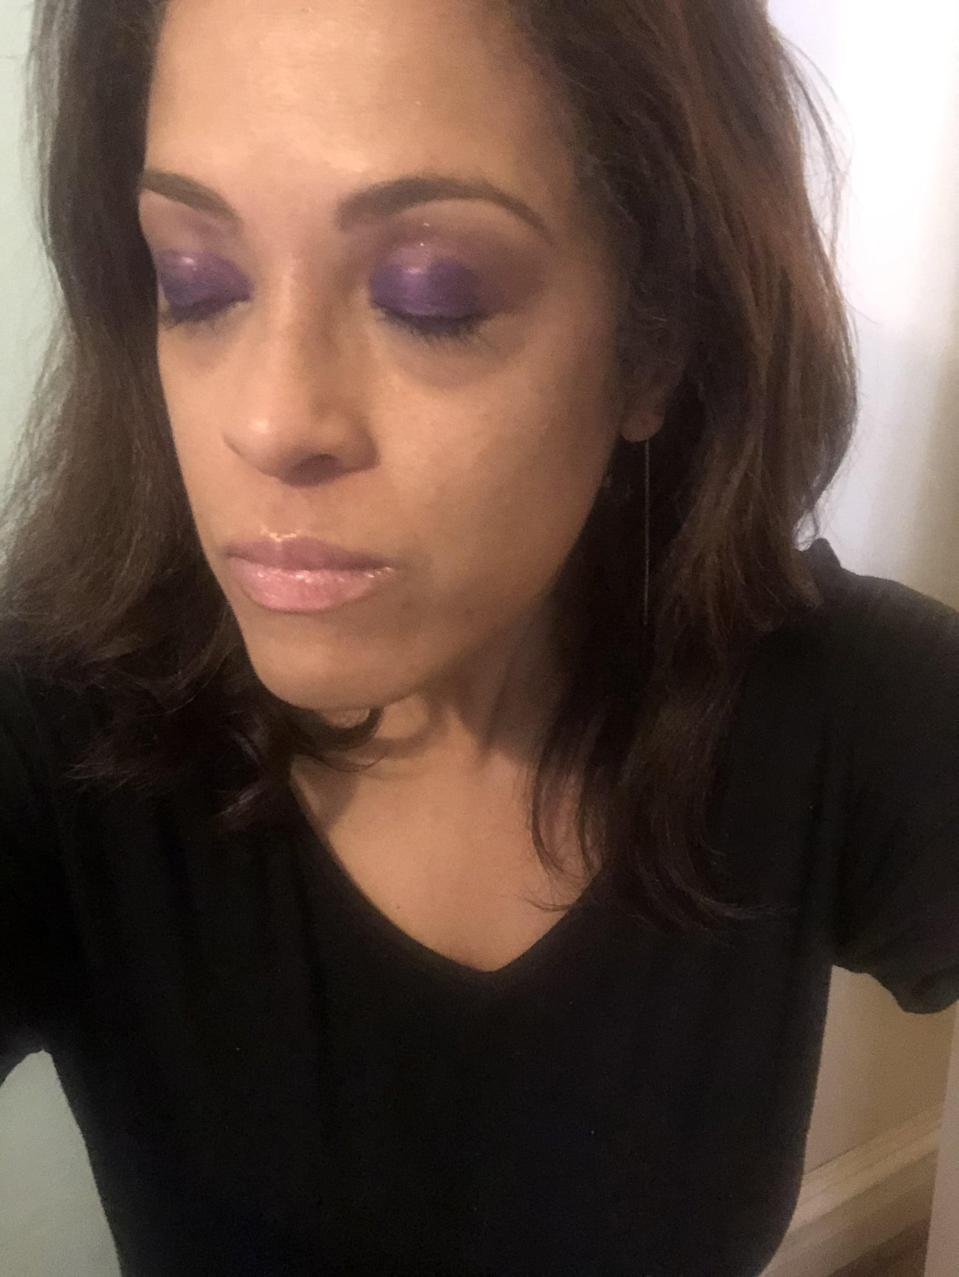 """<p>I usually shy away from purple eyeshadow, opting for warmer earth tones instead, but the vibrancy of this shade made it the one I was most excited to try. I swept it on with its applicator, and then used my finger to smudge the paint outward and upward toward my brows. I then went back over my lids a second time to leave some extra color there.<br><br> This Dominique Cosmetics formula is very forgiving. It stayed wet long enough for me to smudge both eyes, but didn't take as long to dry as other liquid eyeshadows in my collection. It was also easy to dab away extra product before it dried without leaving tell-tale shimmer, though I may <a href=""""https://www.popsugar.com/beauty/best-sephora-collection-makeup-brushes-47542770"""" class=""""link rapid-noclick-resp"""" rel=""""nofollow noopener"""" target=""""_blank"""" data-ylk=""""slk:opt to swap in a brush for more precision"""">opt to swap in a brush for more precision</a> in the future.</p>"""